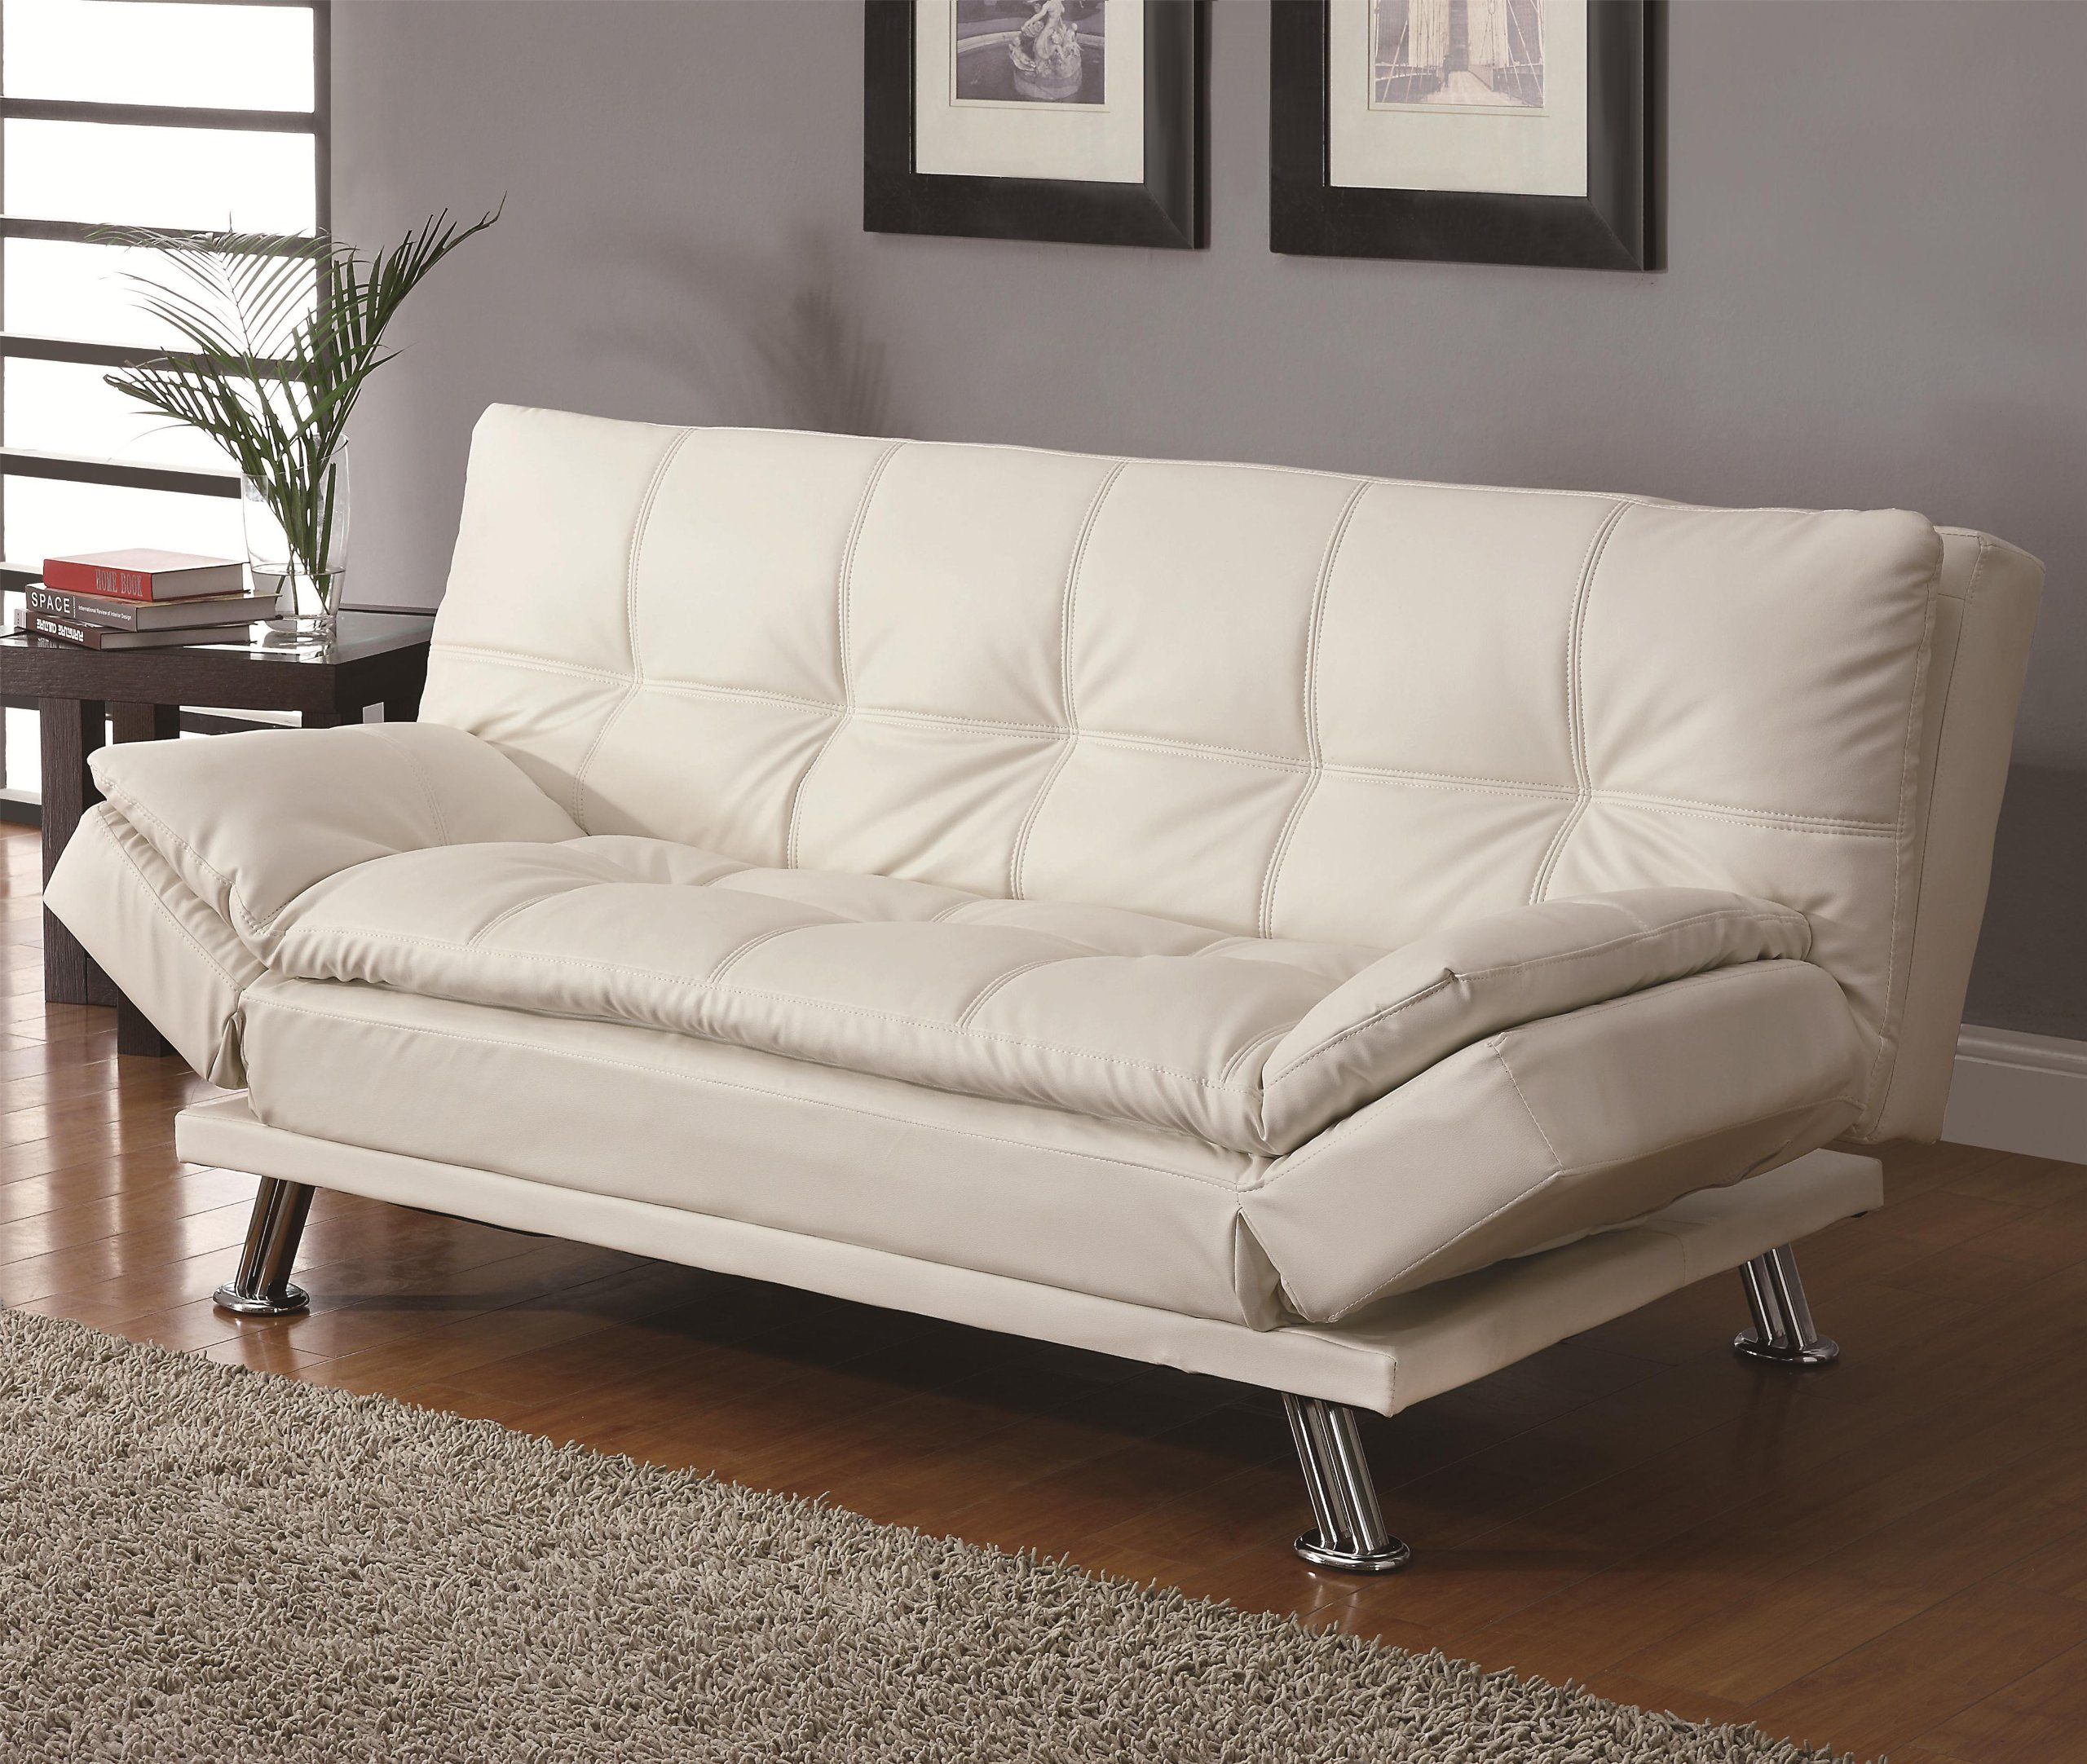 Robot Check Contemporary Sofa Bed White Leather Sofas Modern Sofa Bed